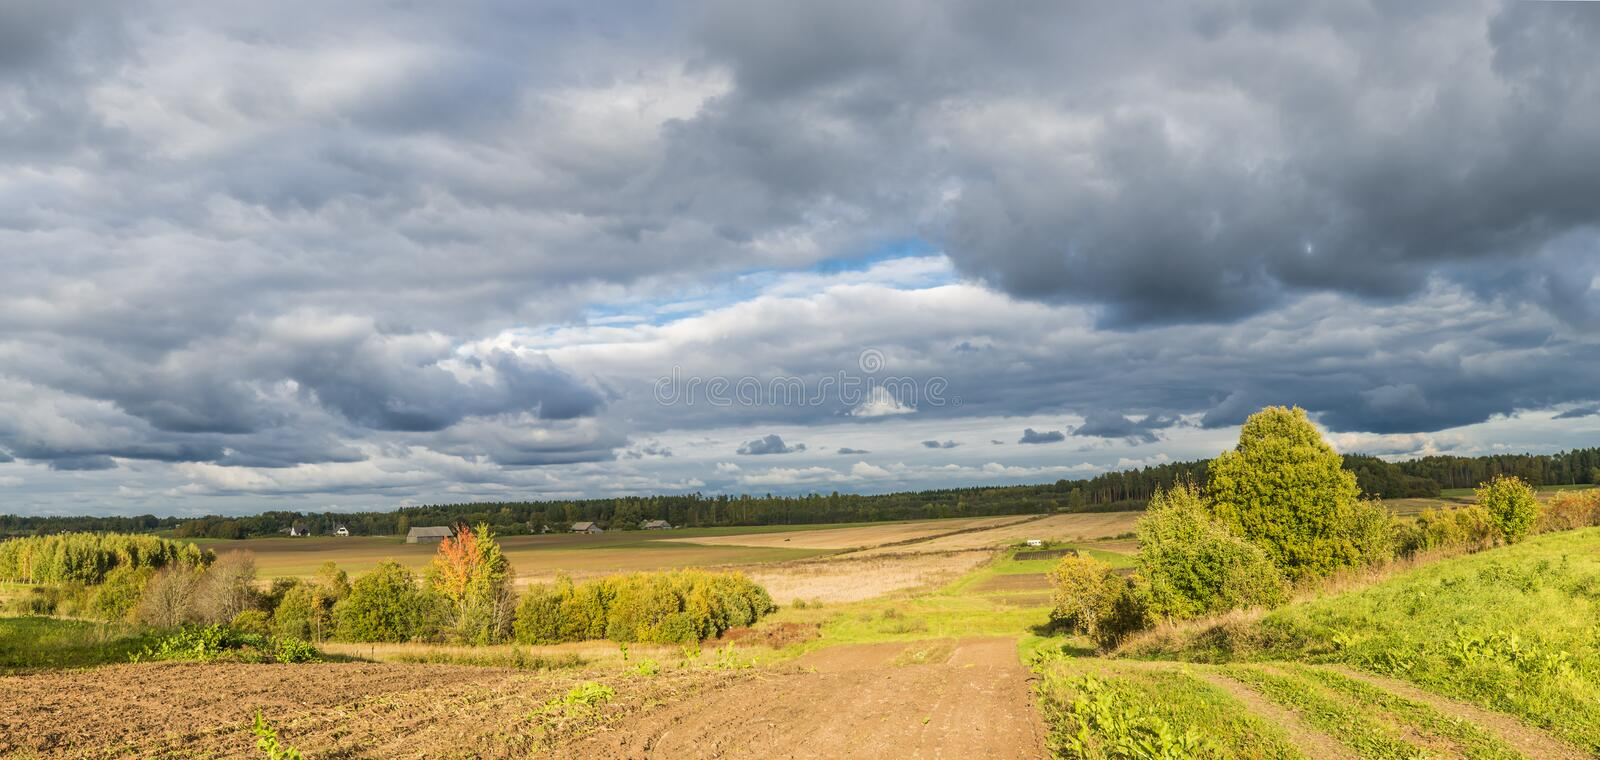 Autumn country road, Latvia. Country road among trees and fields, Latvia royalty free stock photography